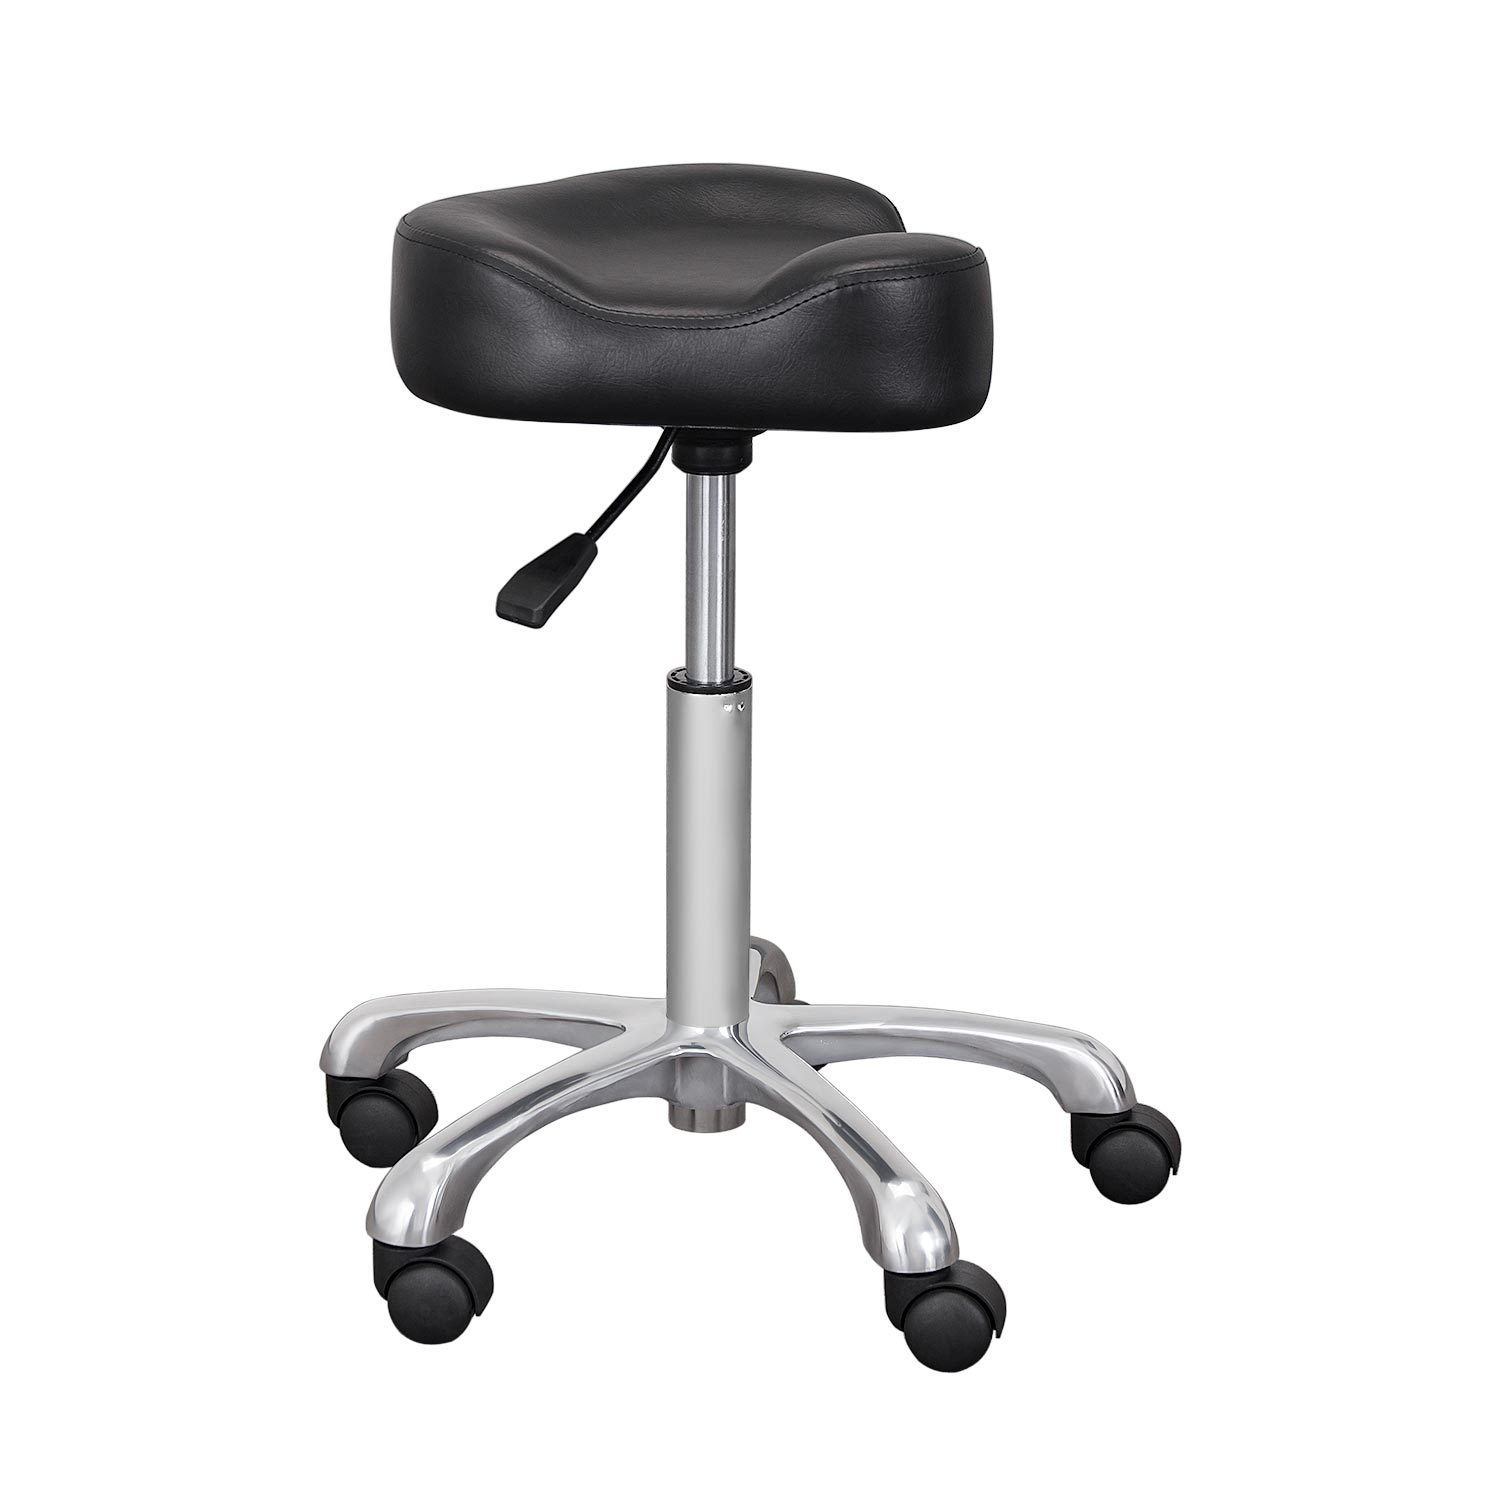 backless adjustable salon saddle stool product image ... XGLOUFL